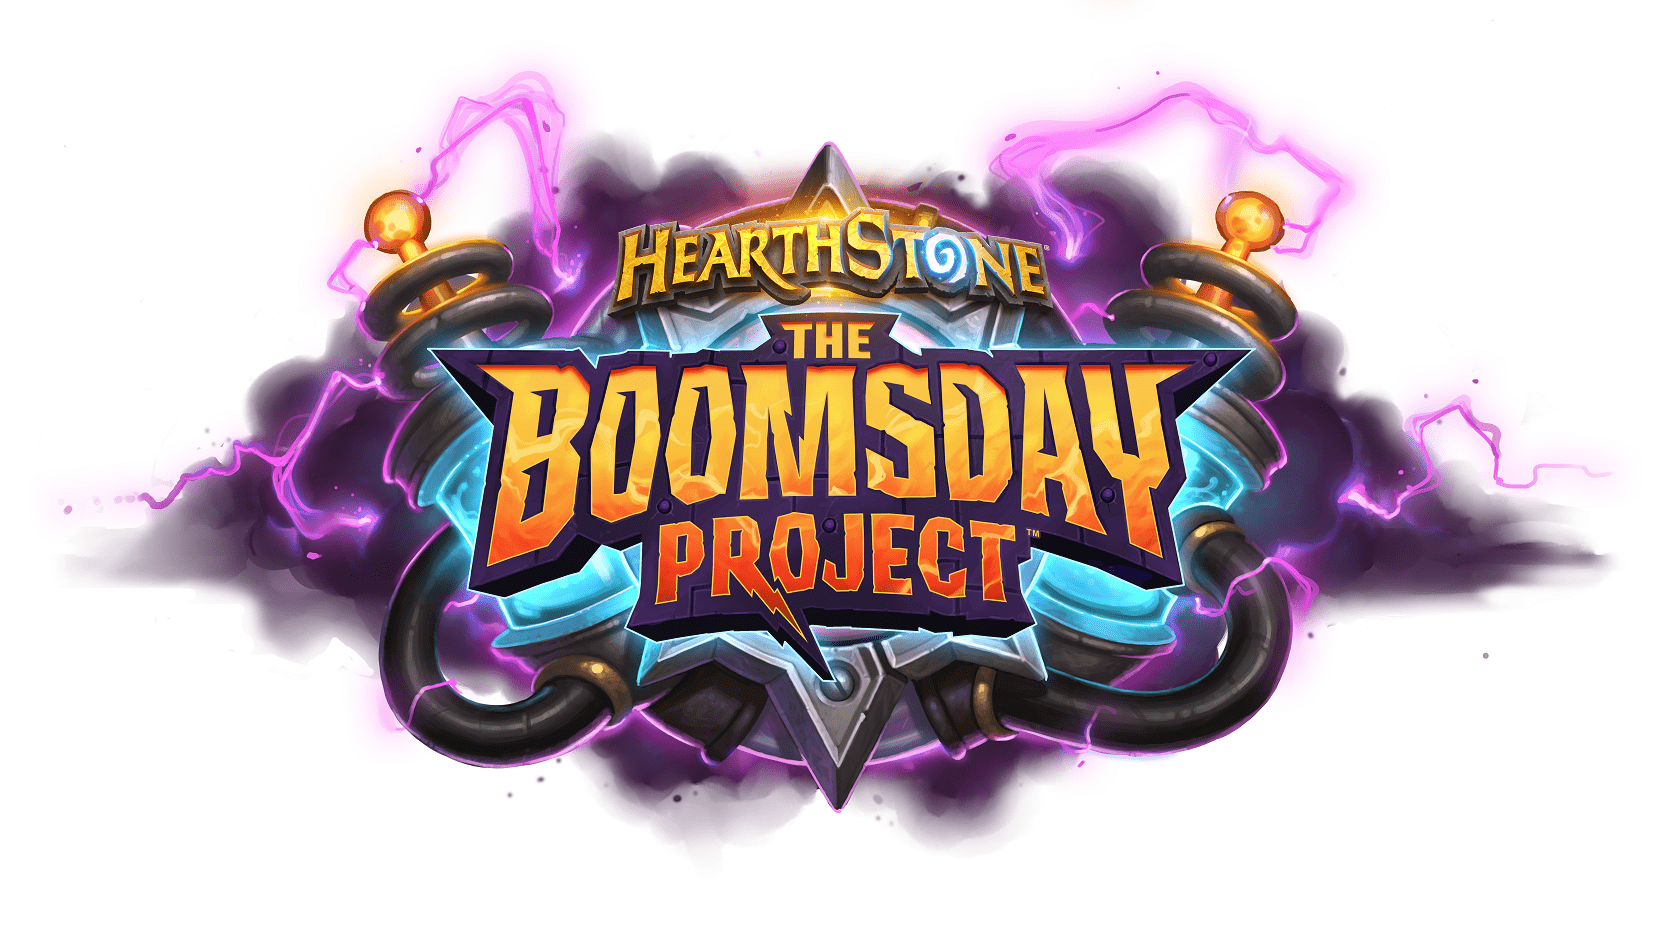 Hearthstone Blizzard Boomsday Expansion